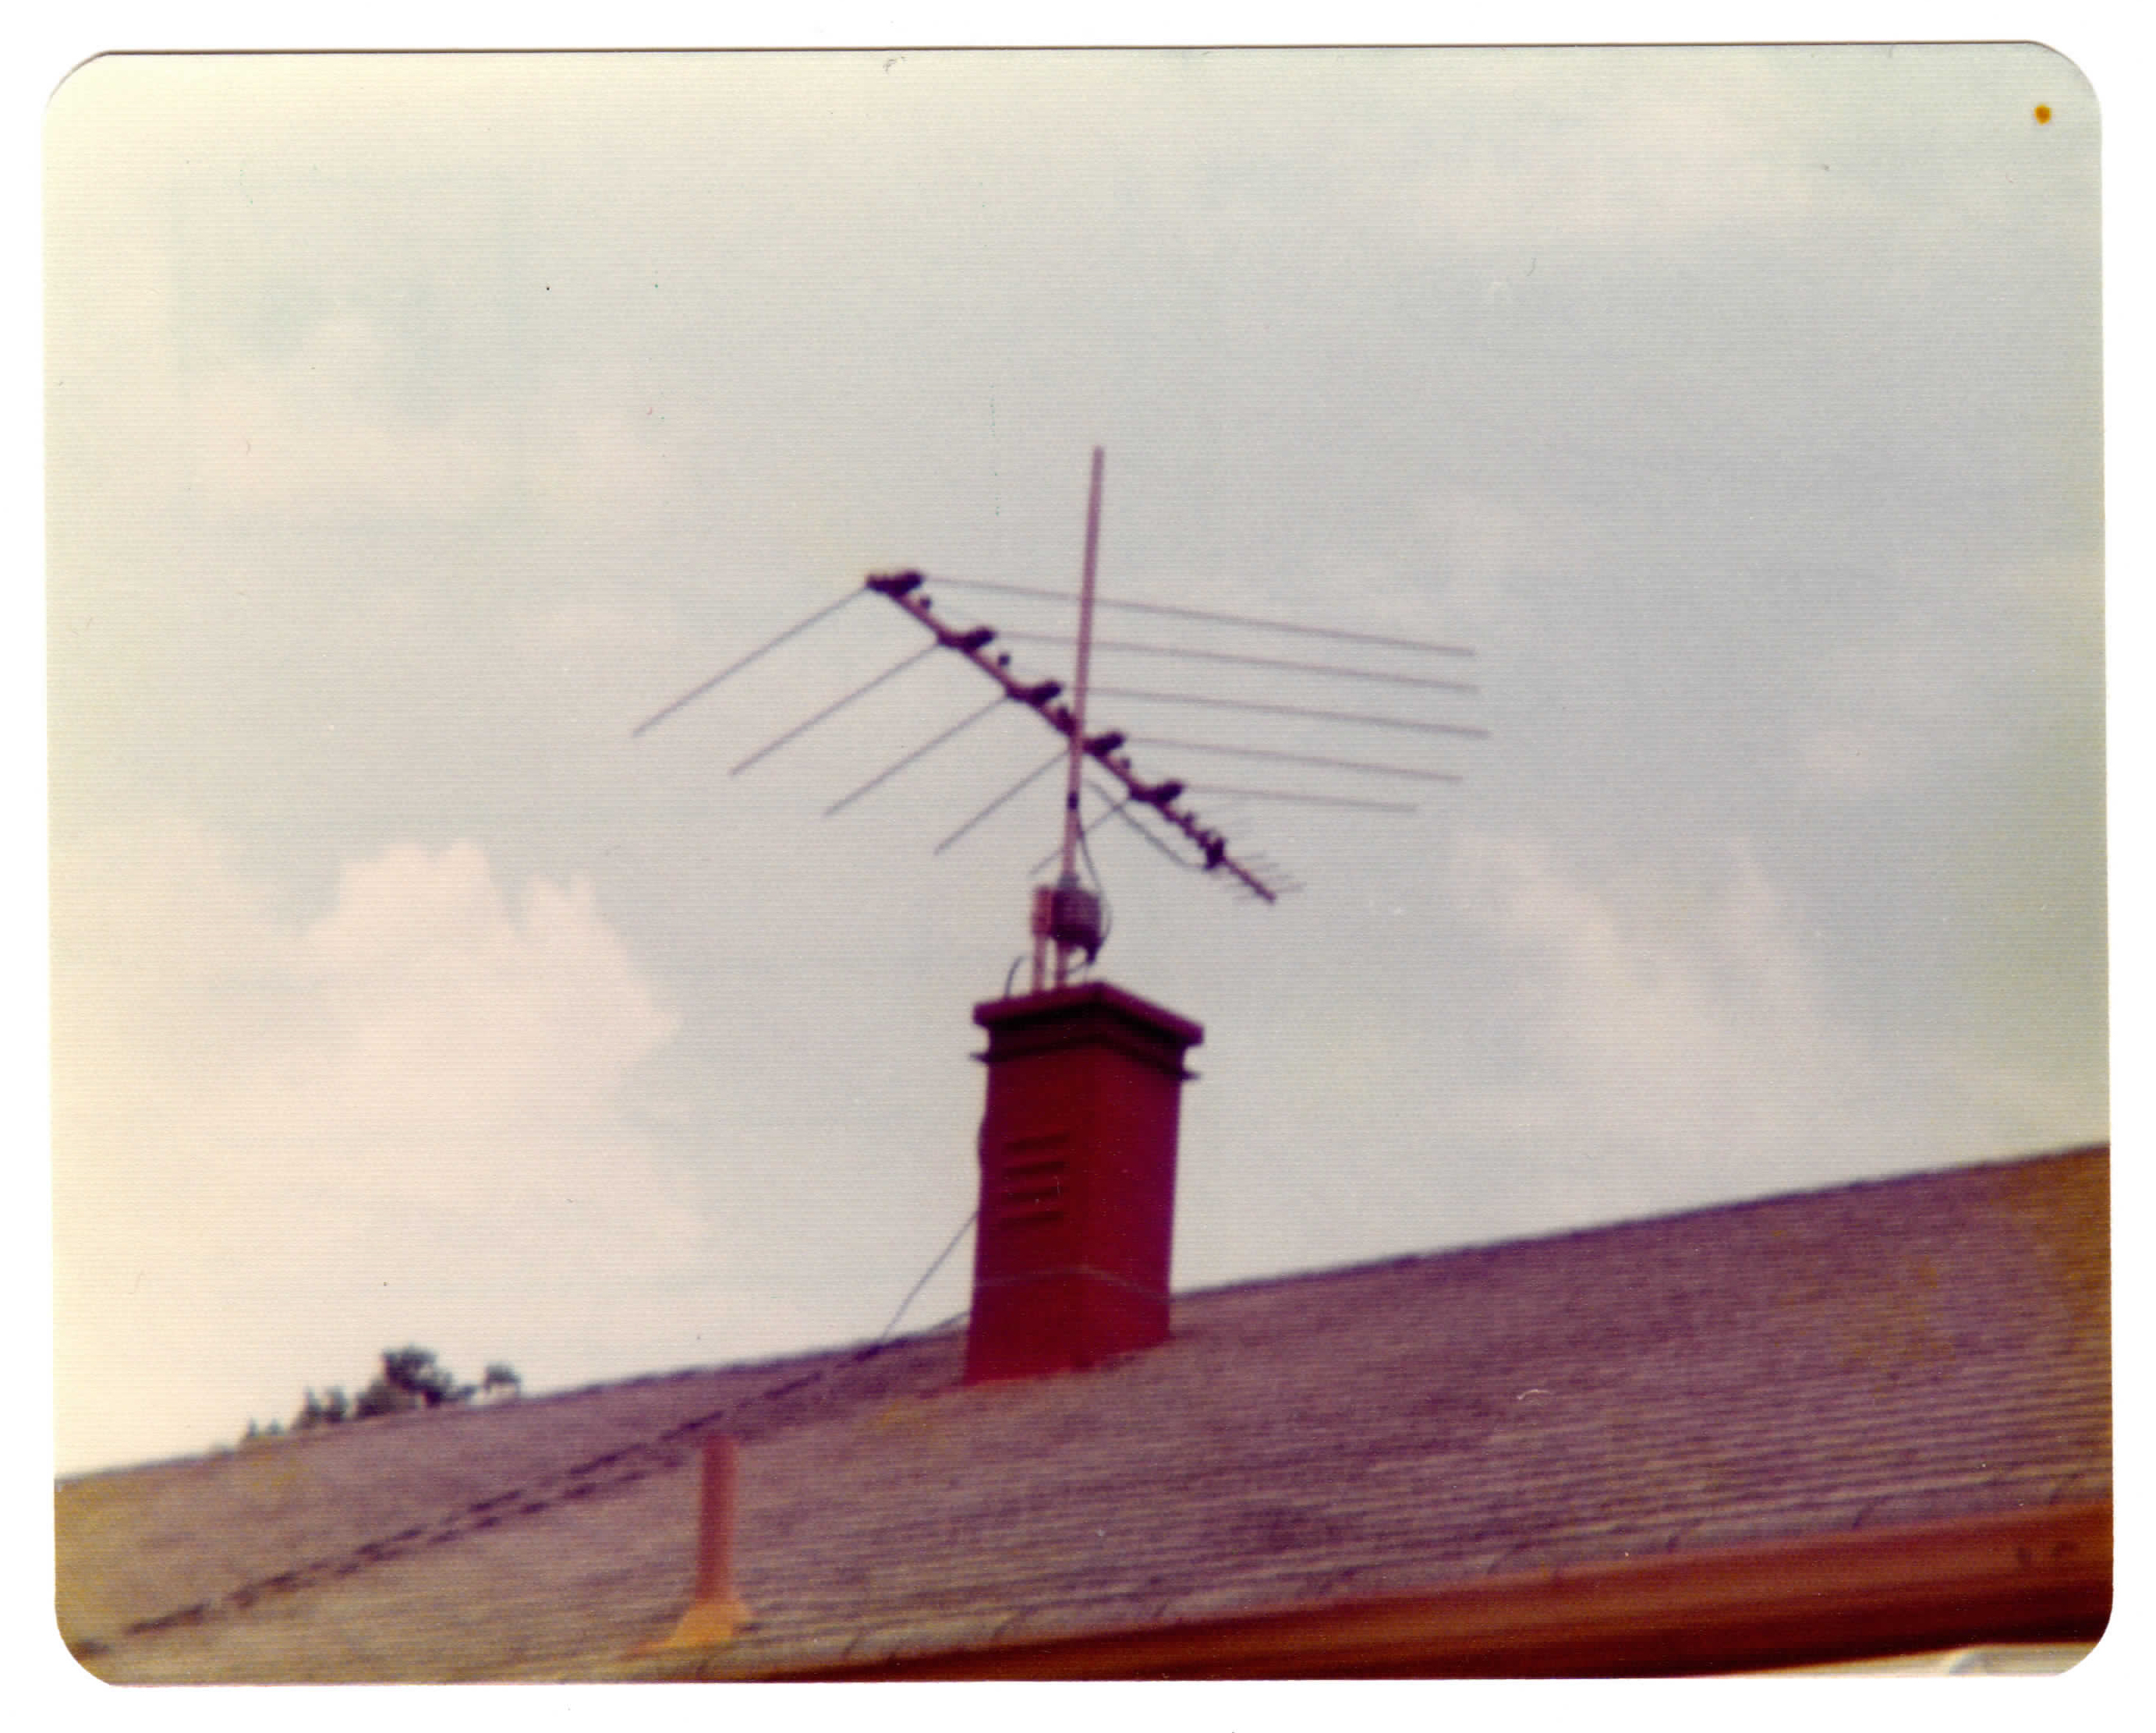 Dad's curiously short antenna mounting - the punishment antenna